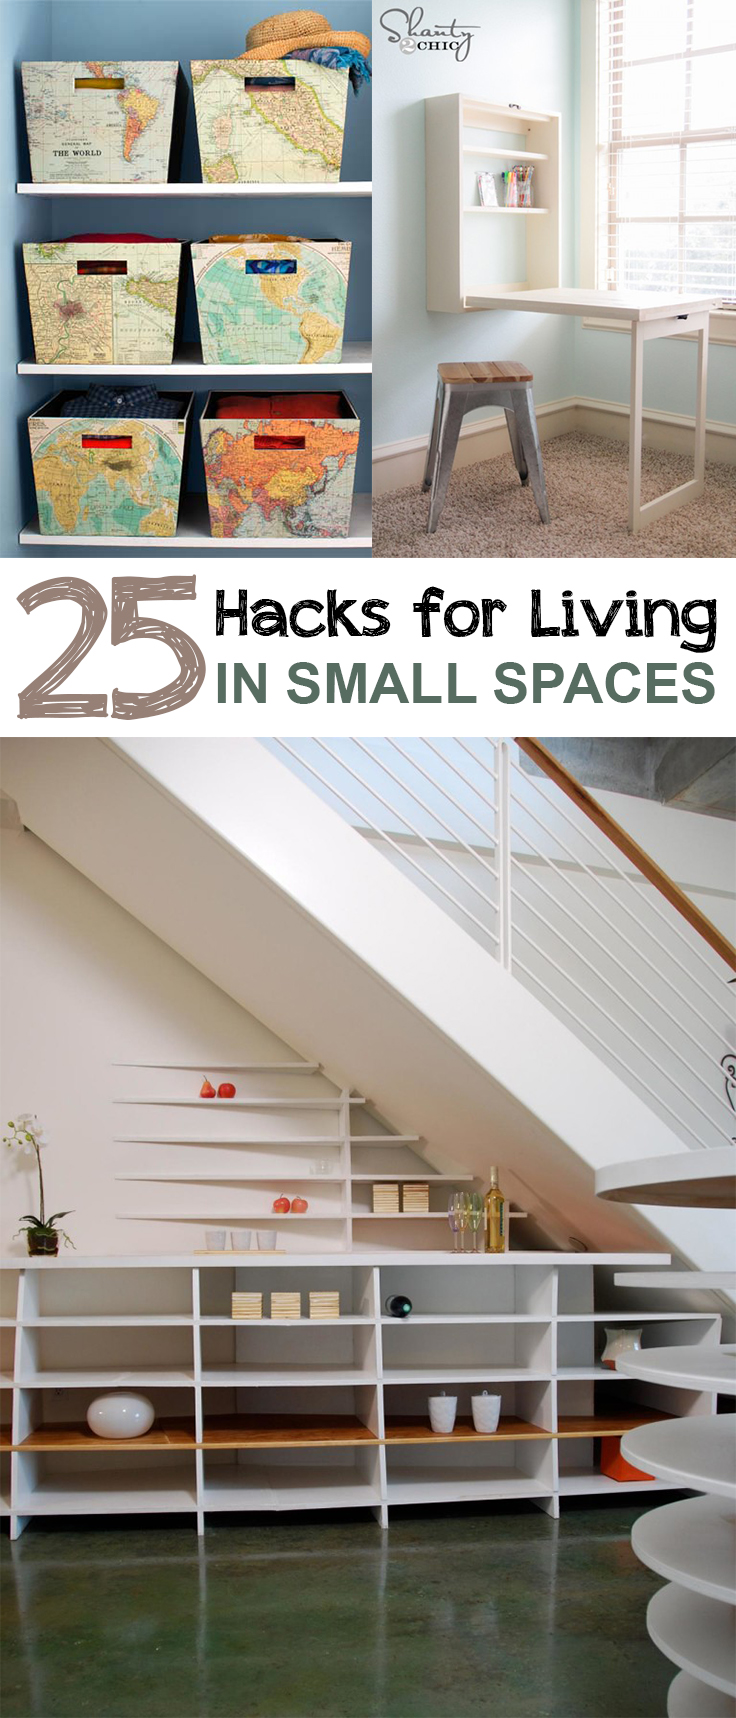 Small space living, DIY home decor, small space decorating, organizing small spaces, popular pin, living in small spaces, storage ideas.